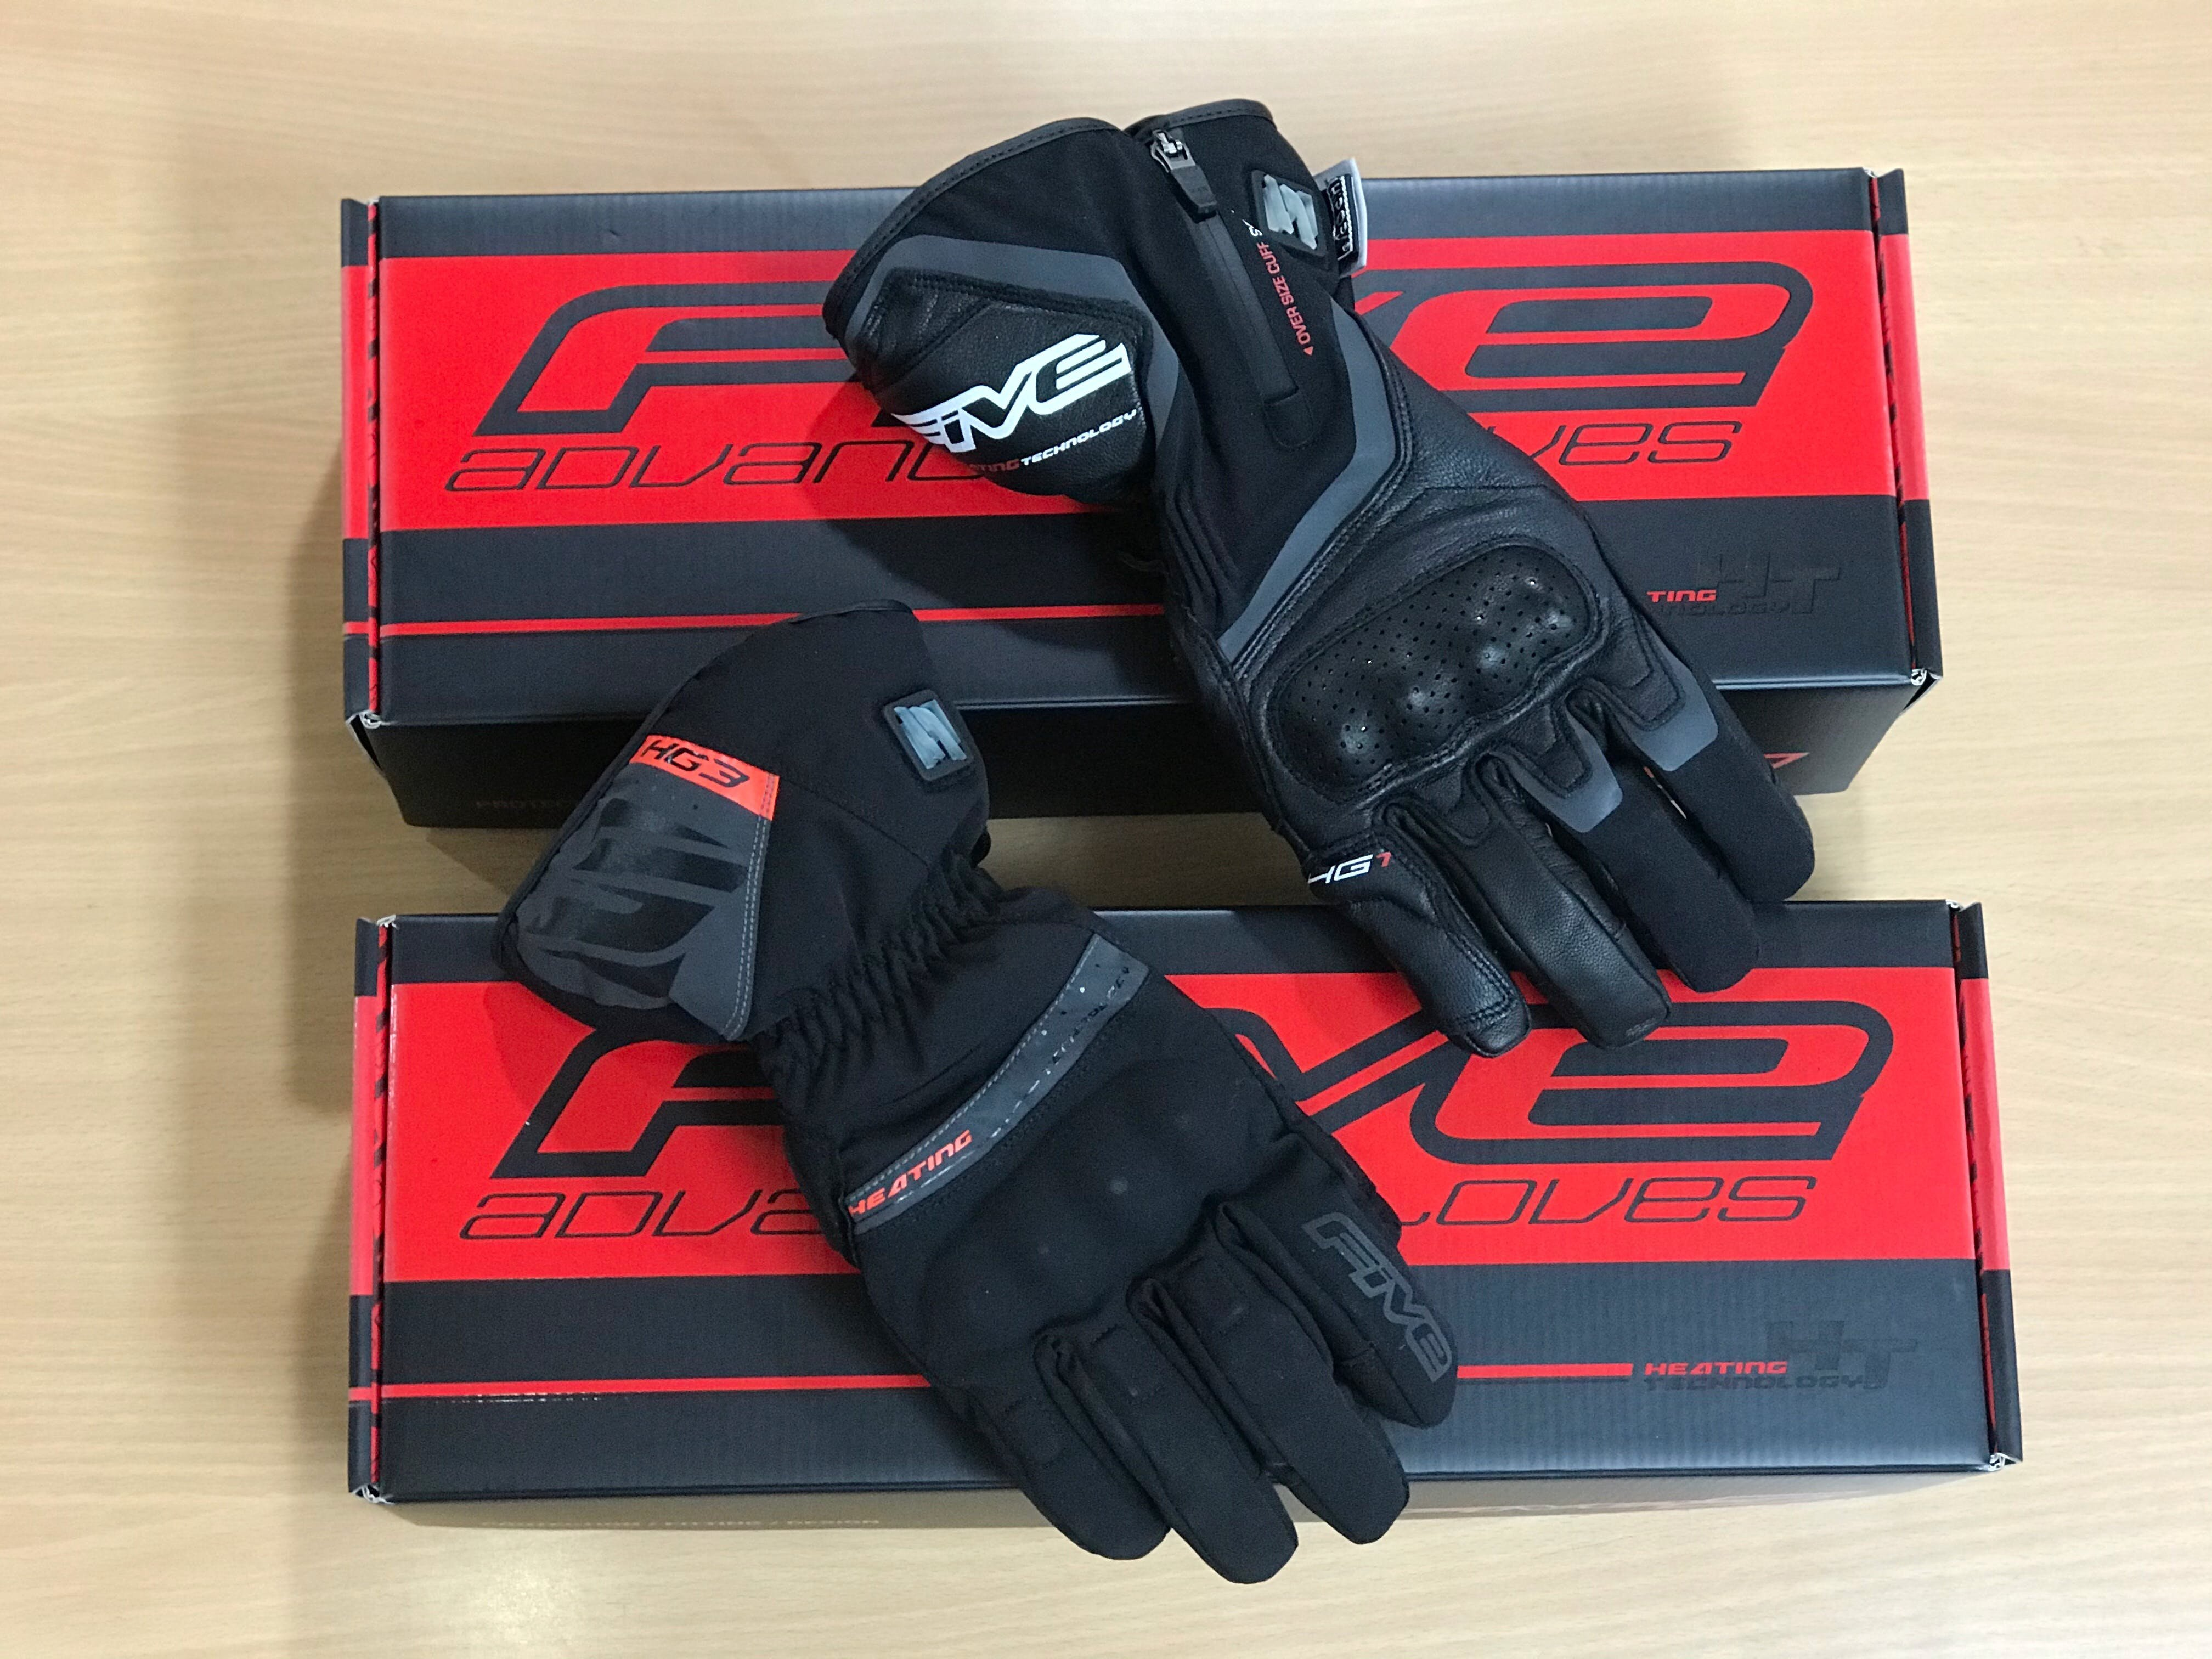 Five HG3 and HG1 heated gloves side by side on top of two glove boxes